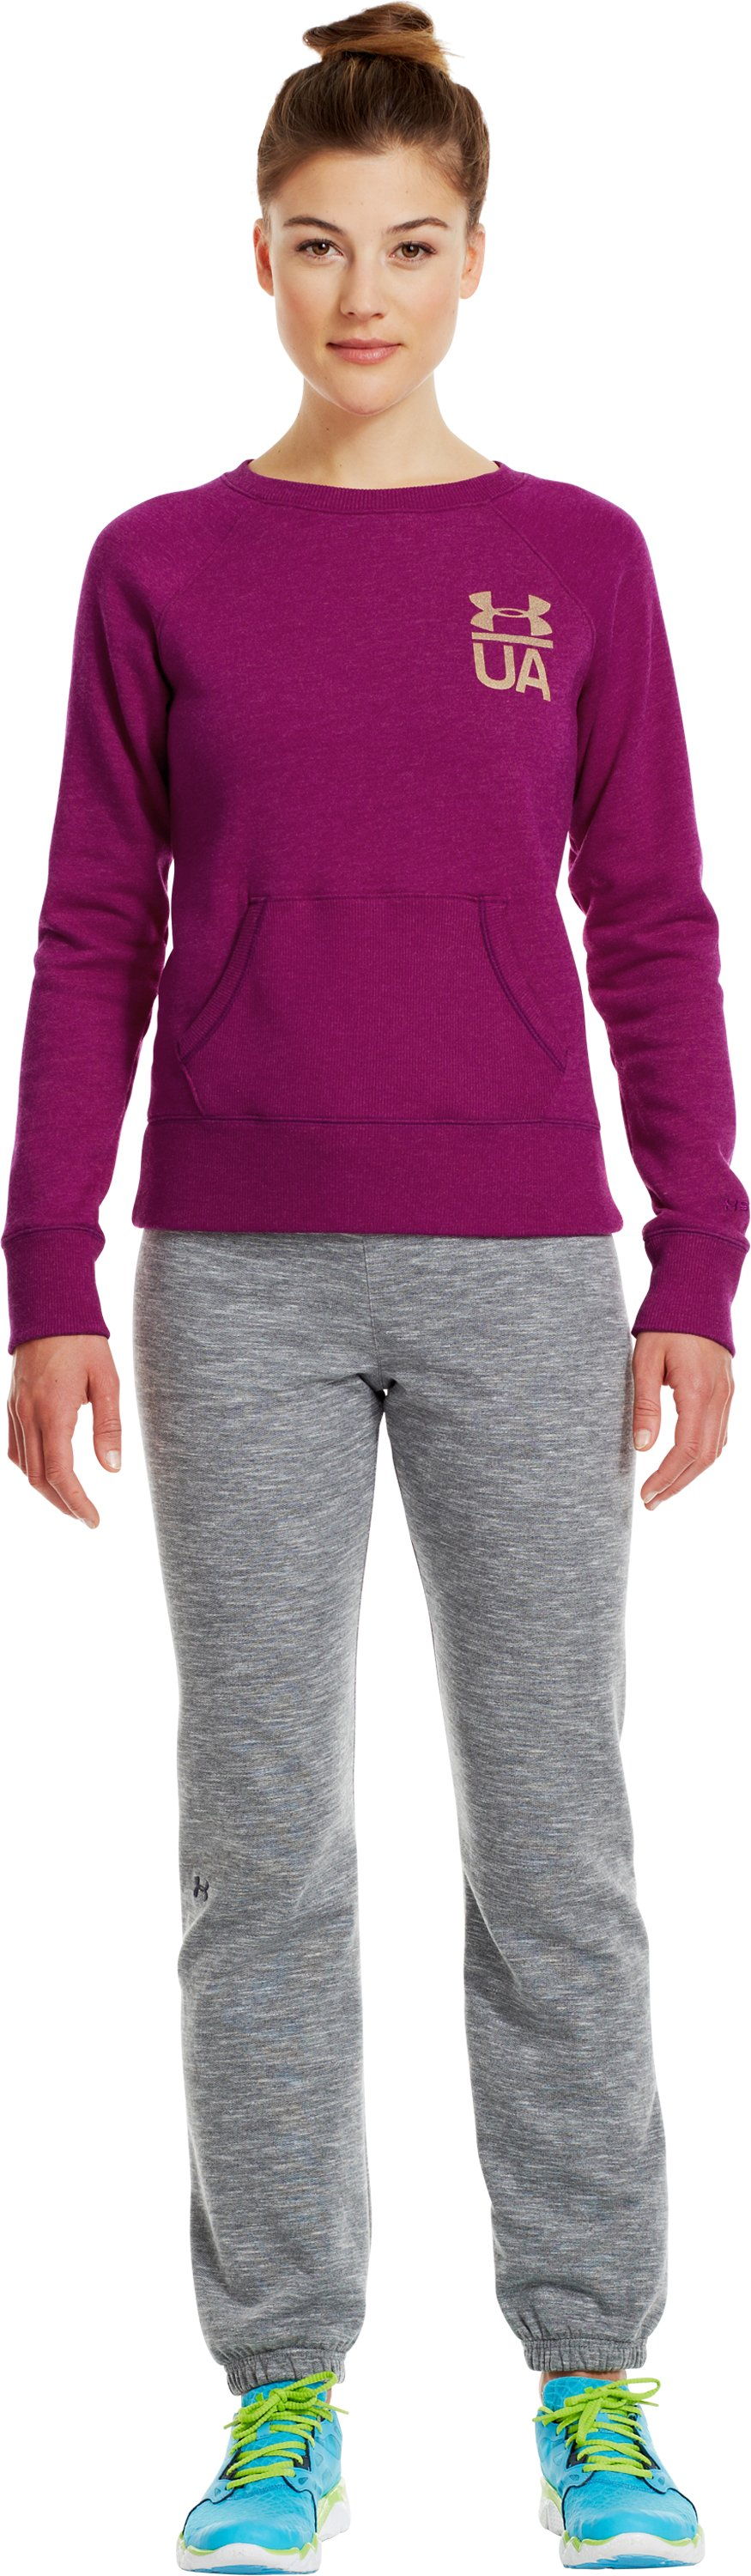 Women's Charged Cotton® Legacy Crew, Aubergine, zoomed image